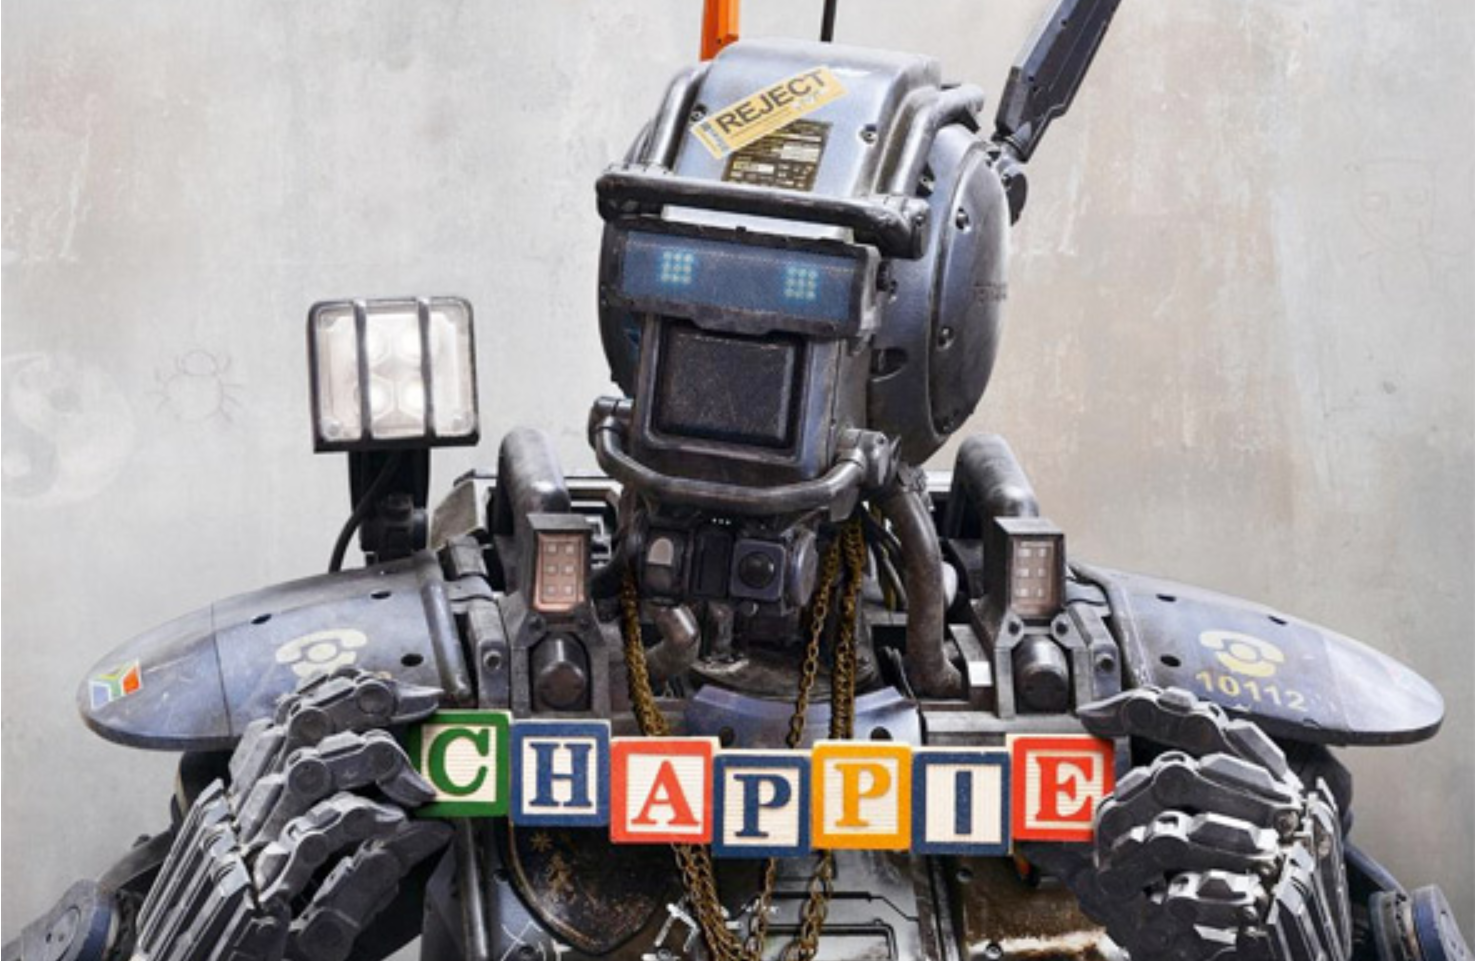 Trailer Breakdown: The First Trailer For Chappie Is Either Misleading, Or Really Troubling